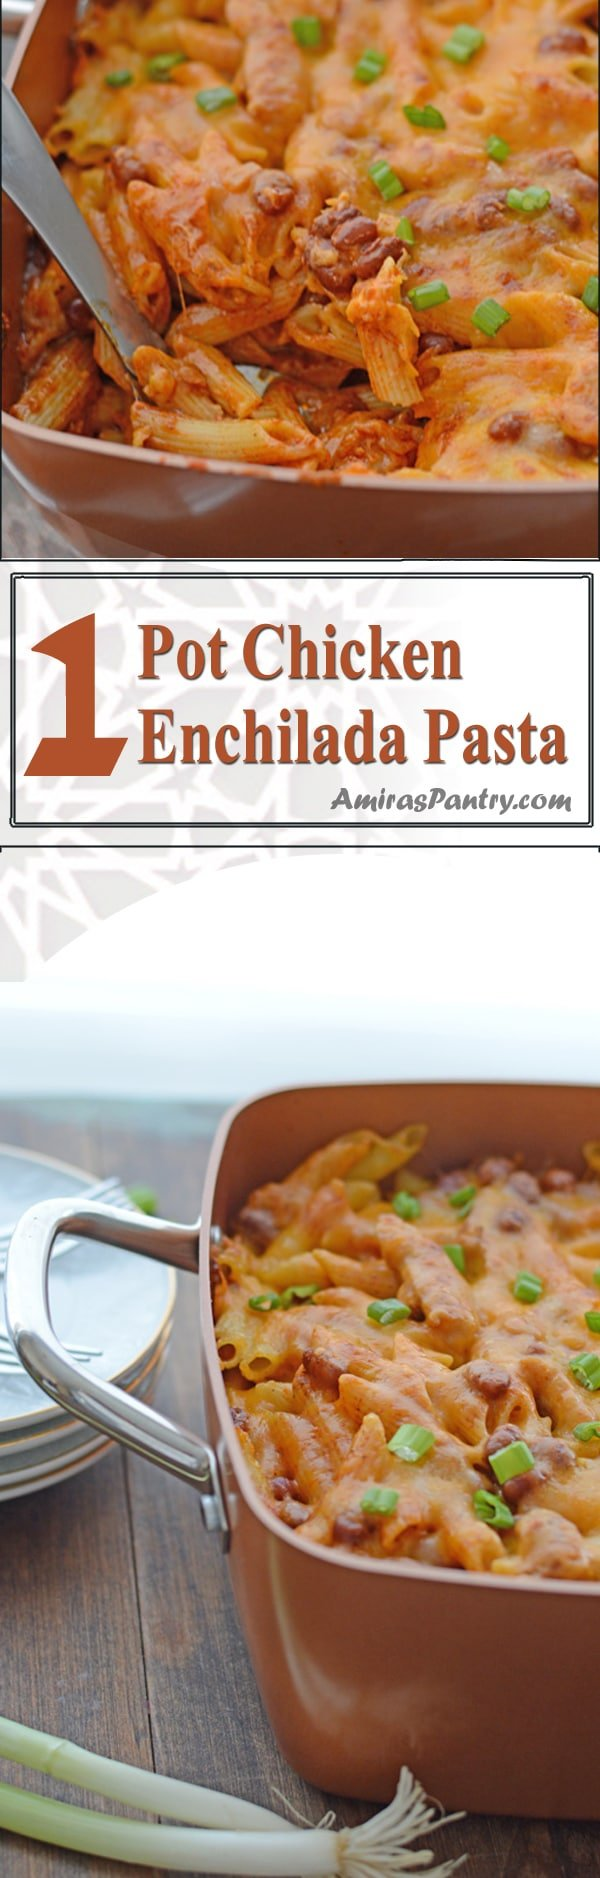 An infograph for one pot chicken enchilada recipe